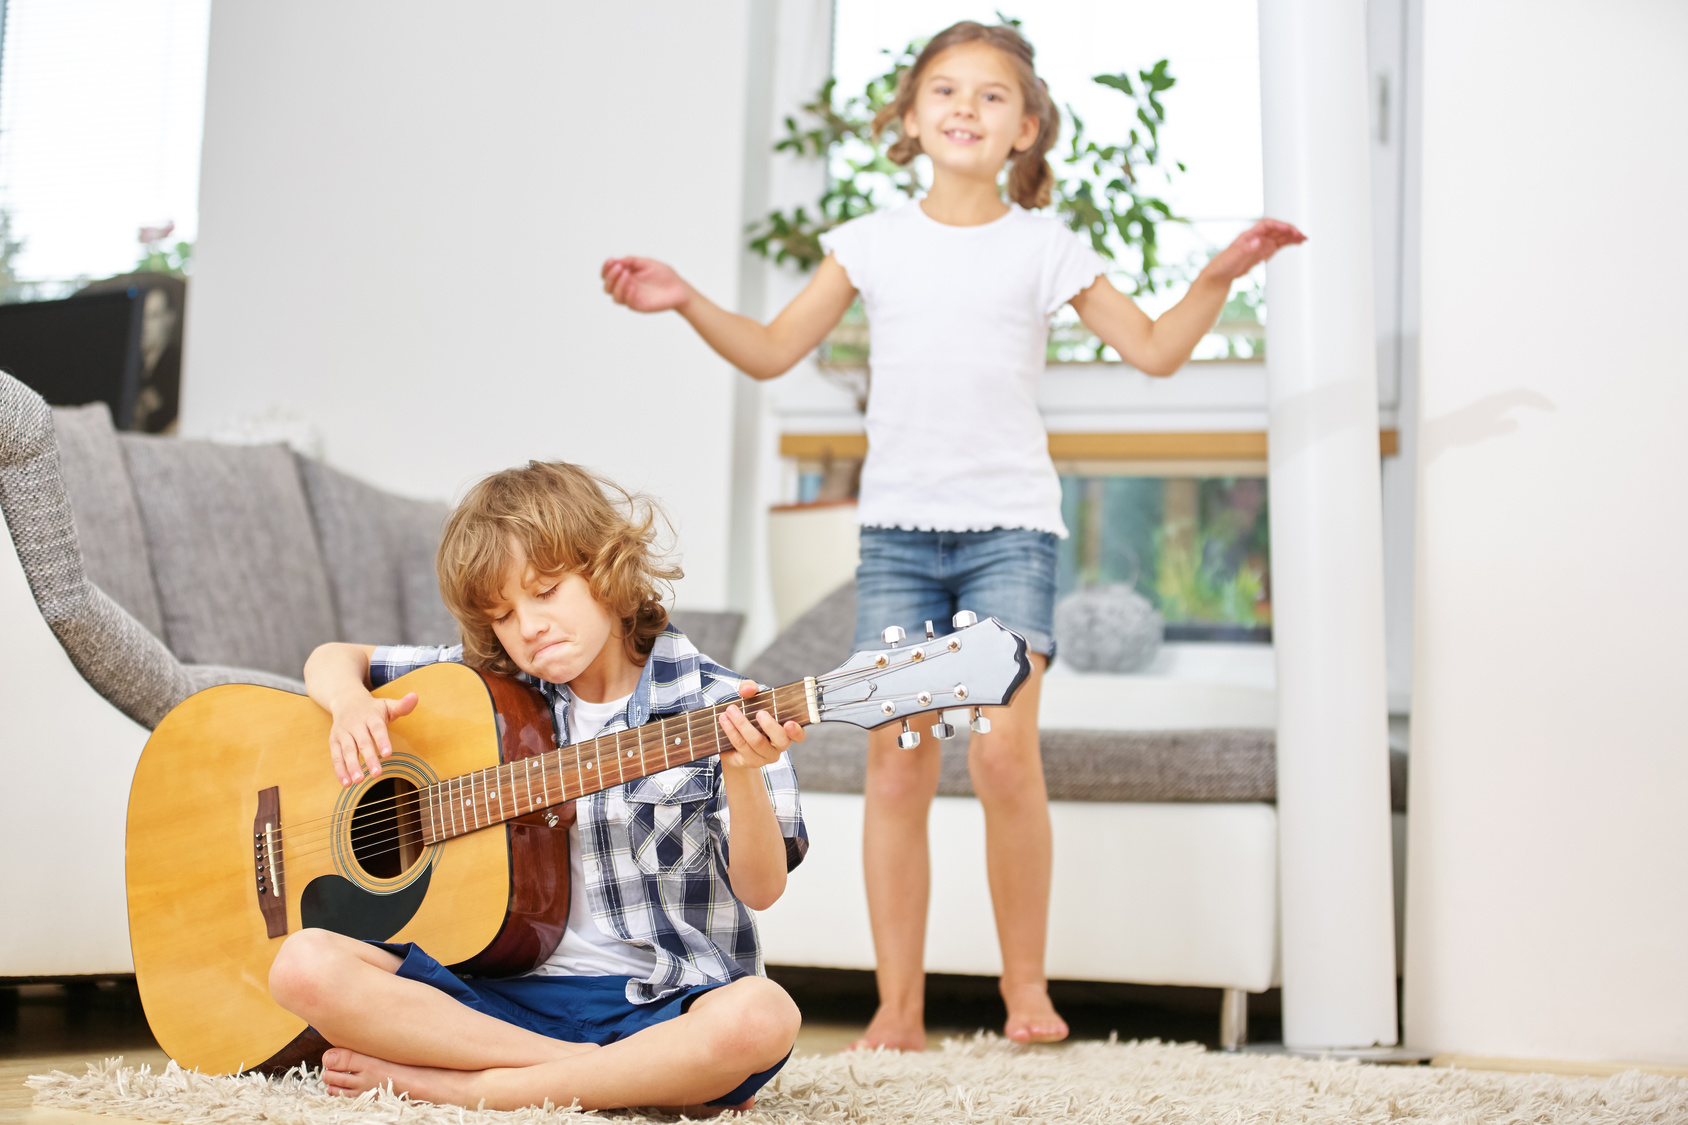 Boy playing guitar and girl dancing